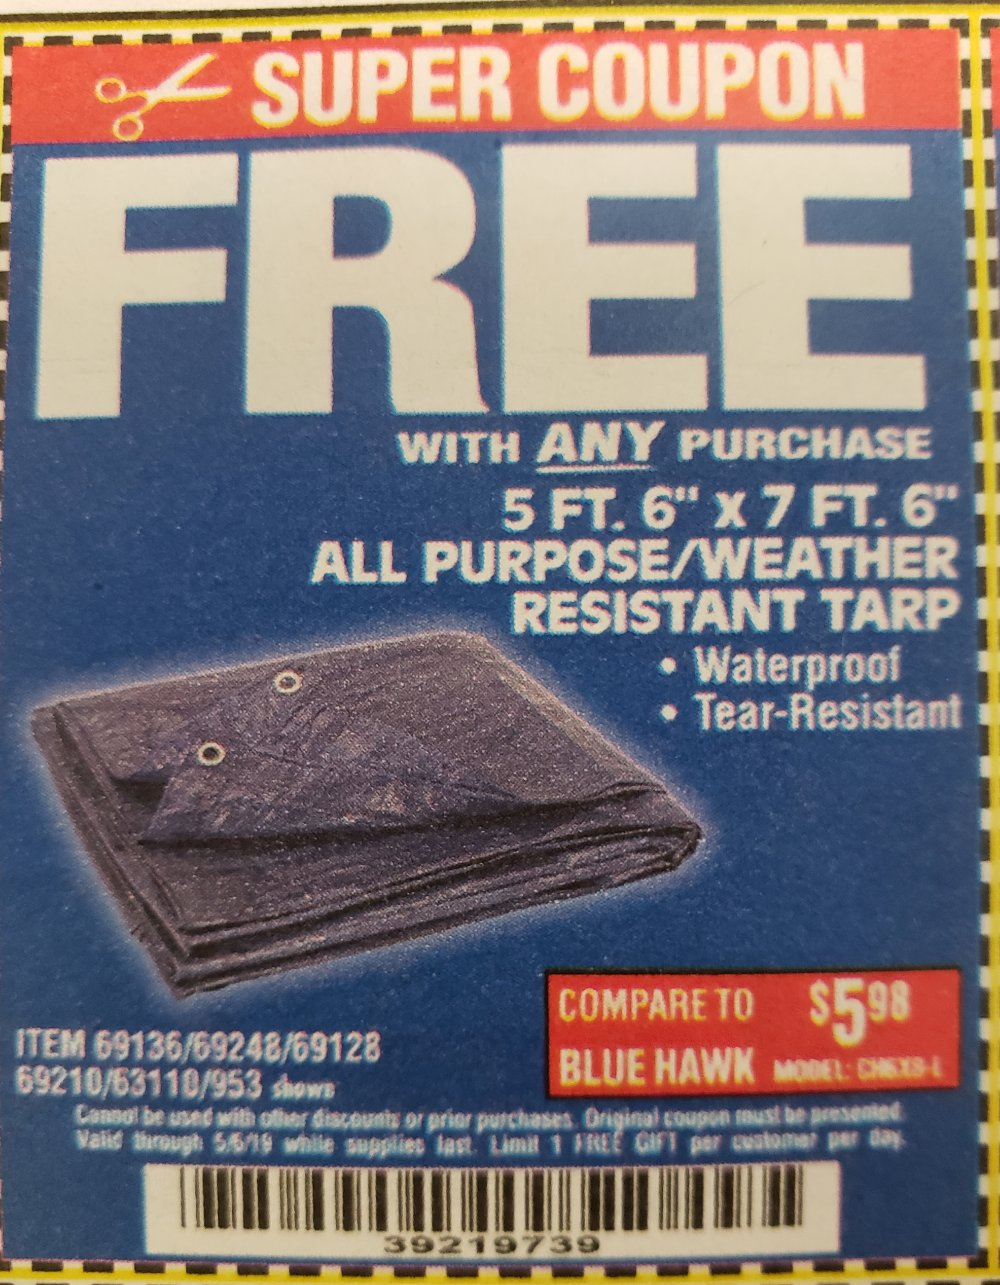 Harbor Freight Coupon, HF Coupons - FREE - 5 Ft. 6